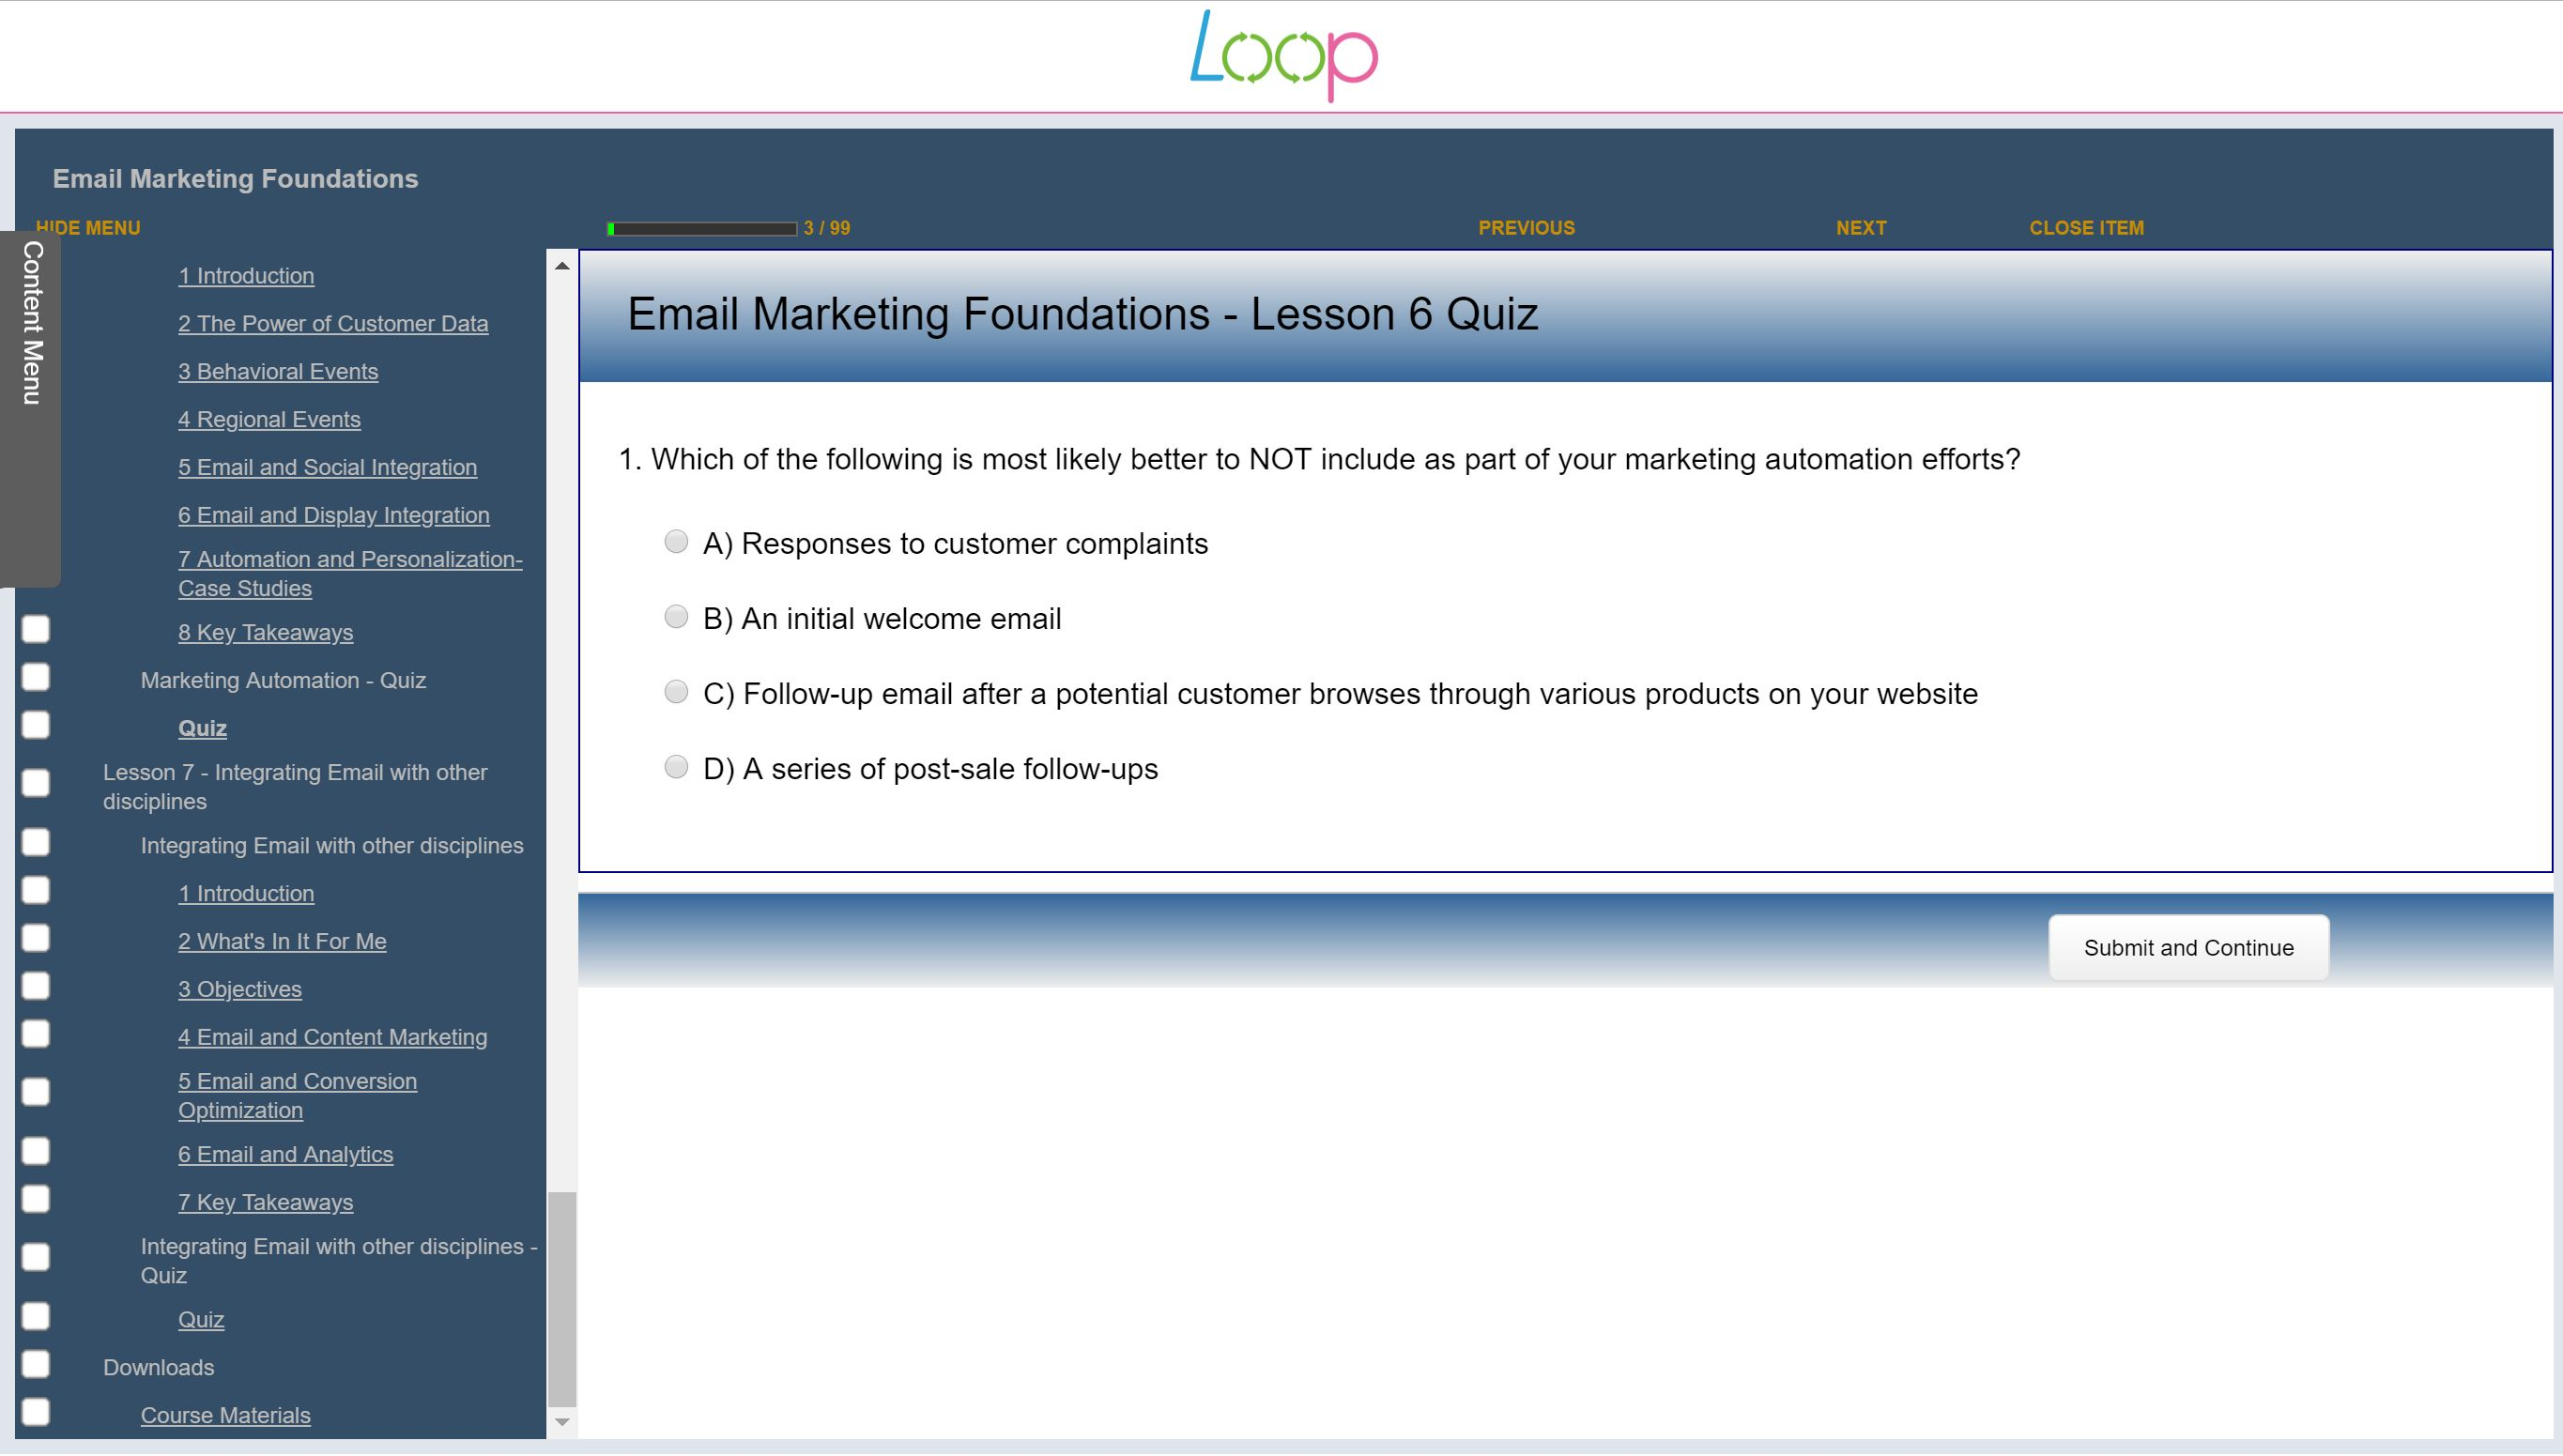 A Marketing Essential - Email Marketing Foundations, Singapore elarning online course